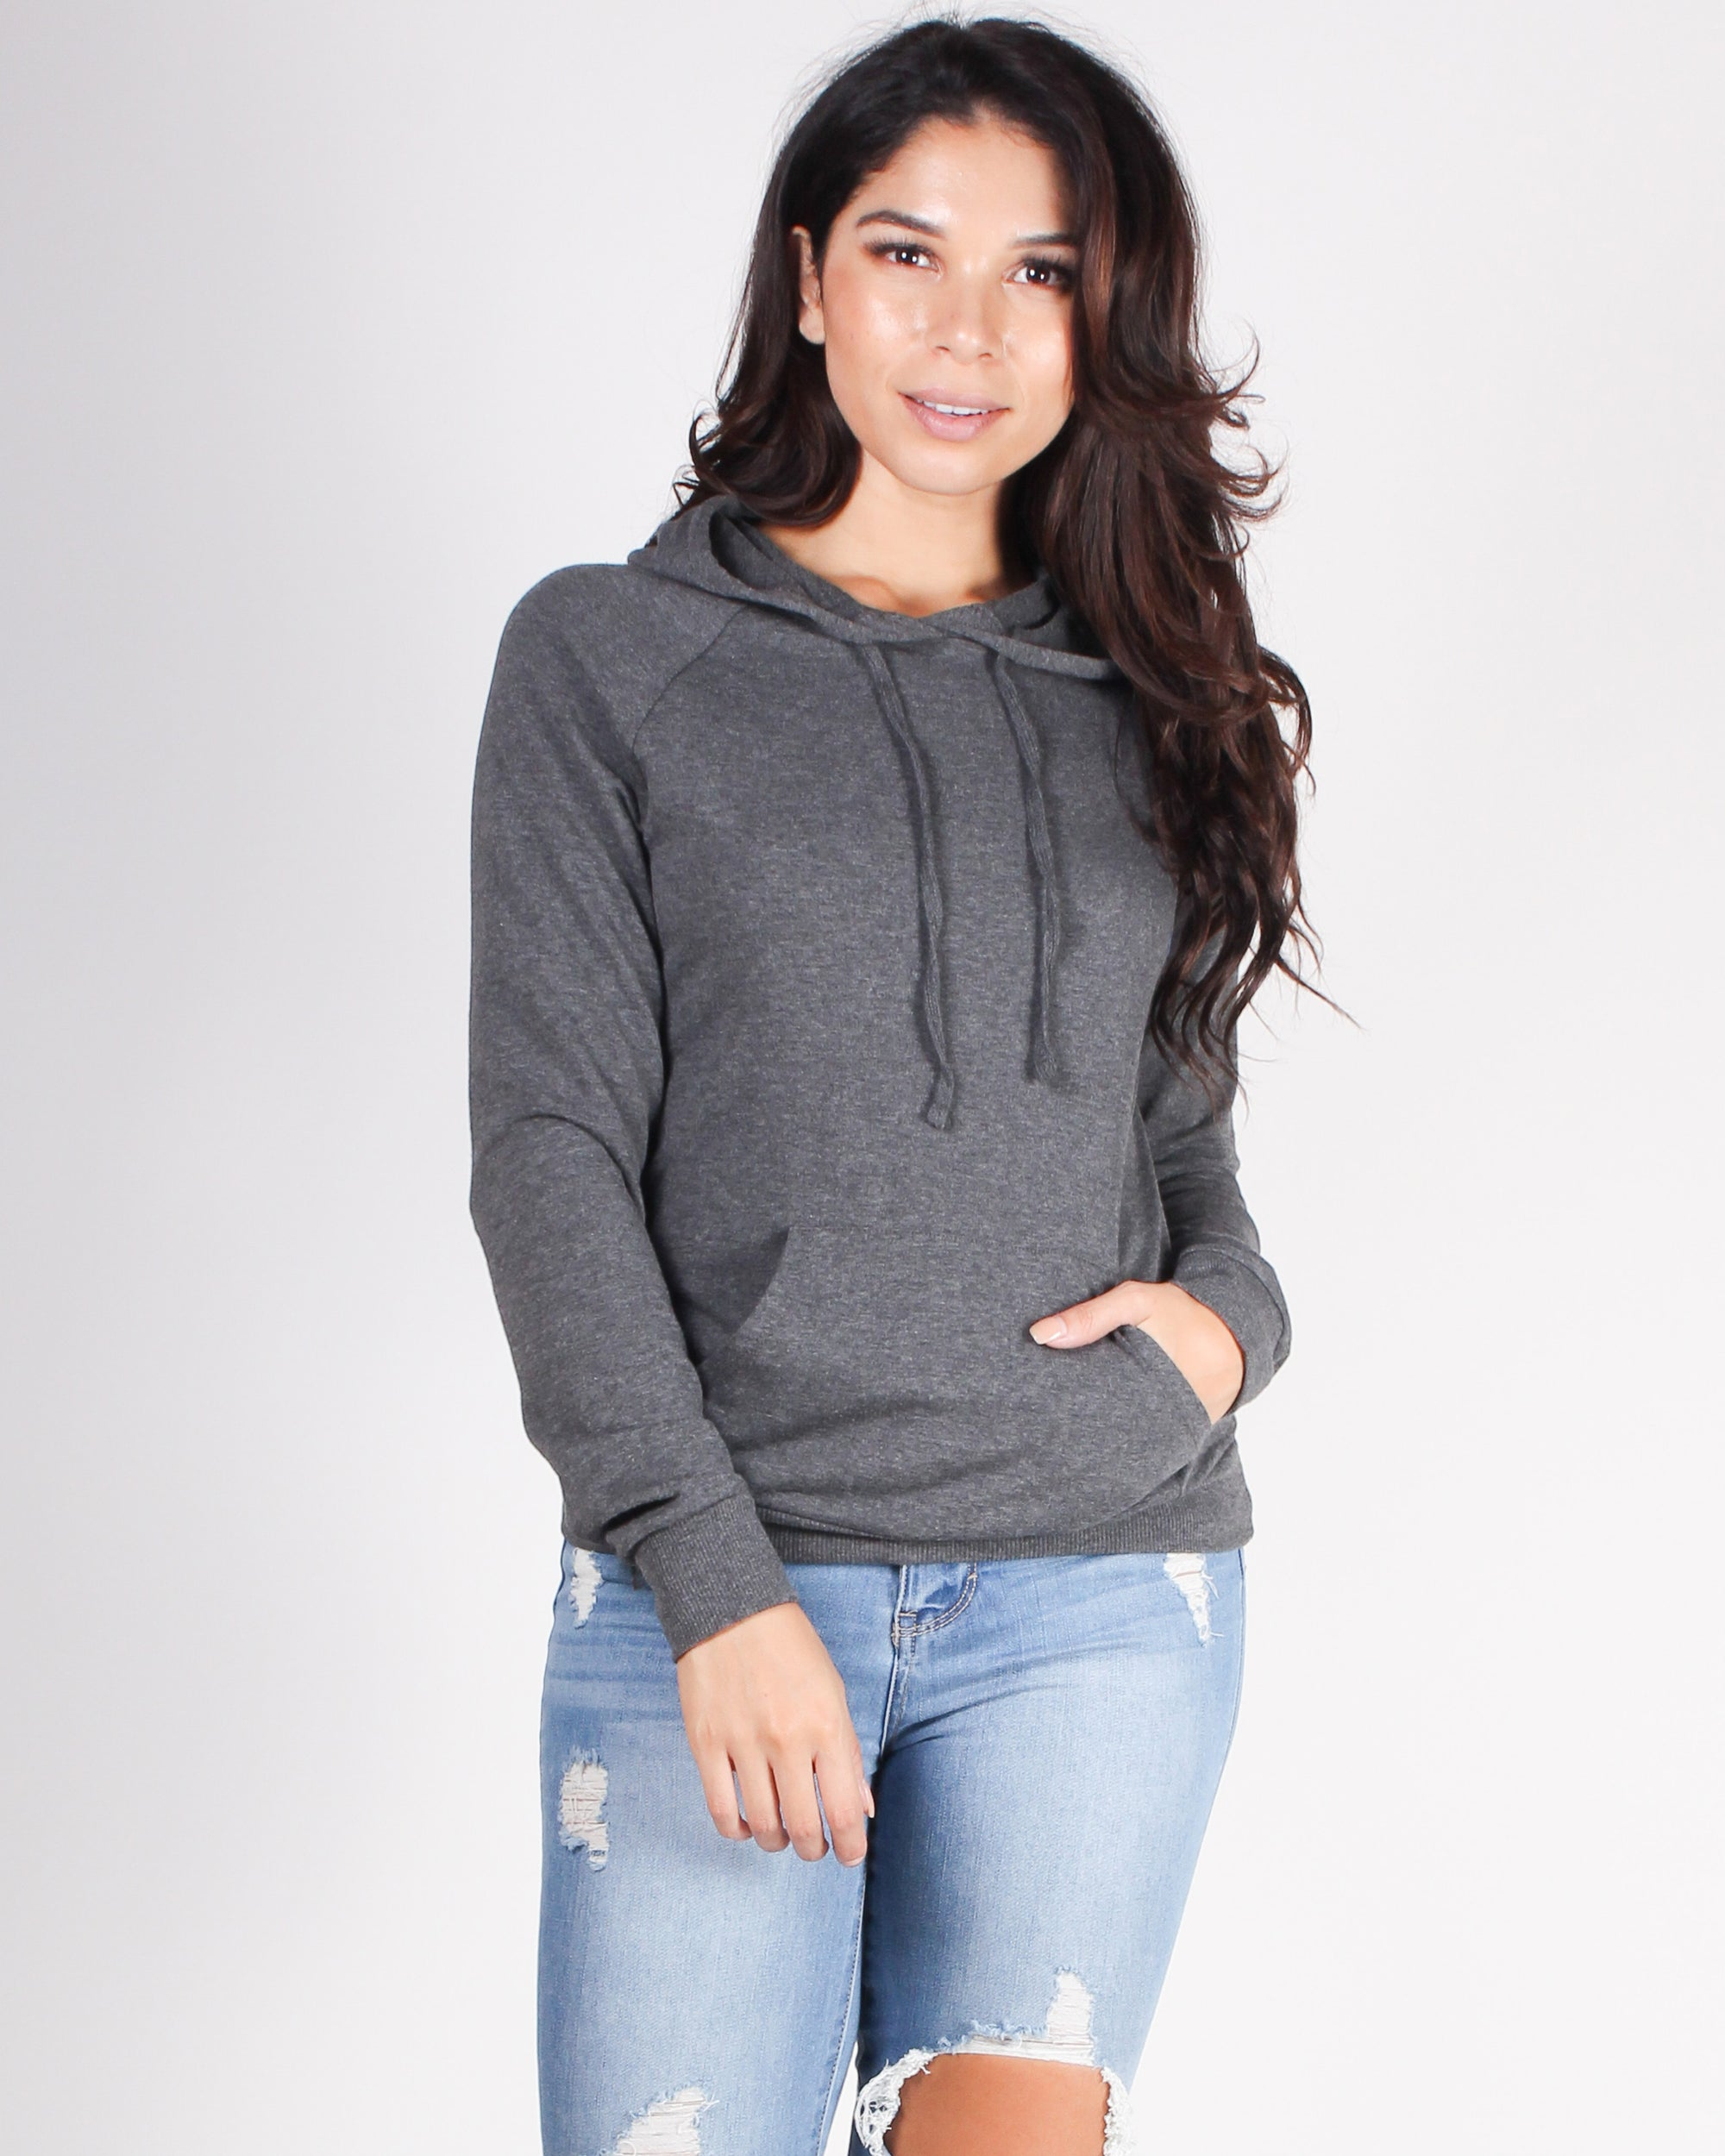 Fashion Q Shop Q And Relax Drawstring Hooded Sweater (Charcoal) T1481